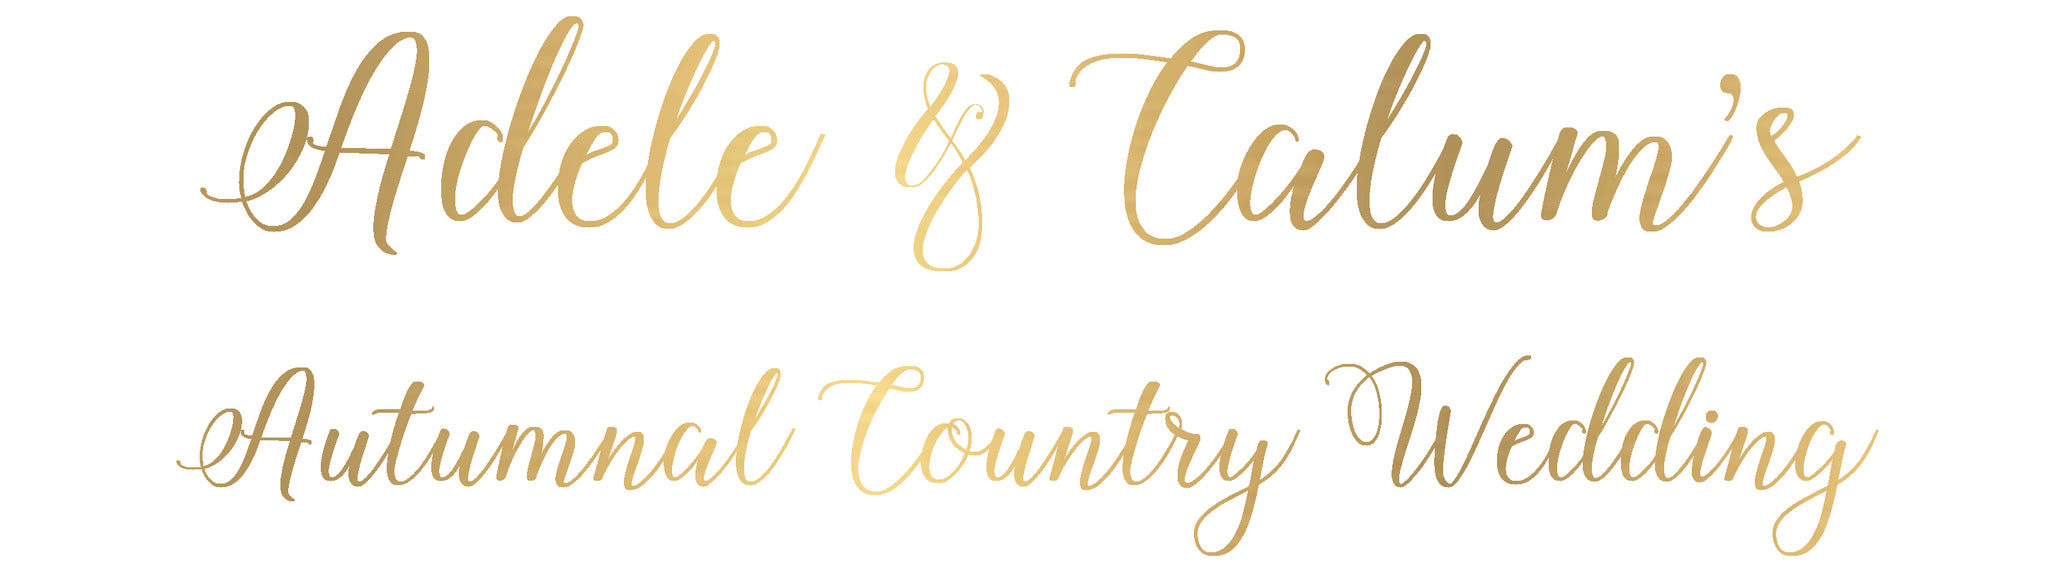 Adele and Calum's Autumnal Country Wedding